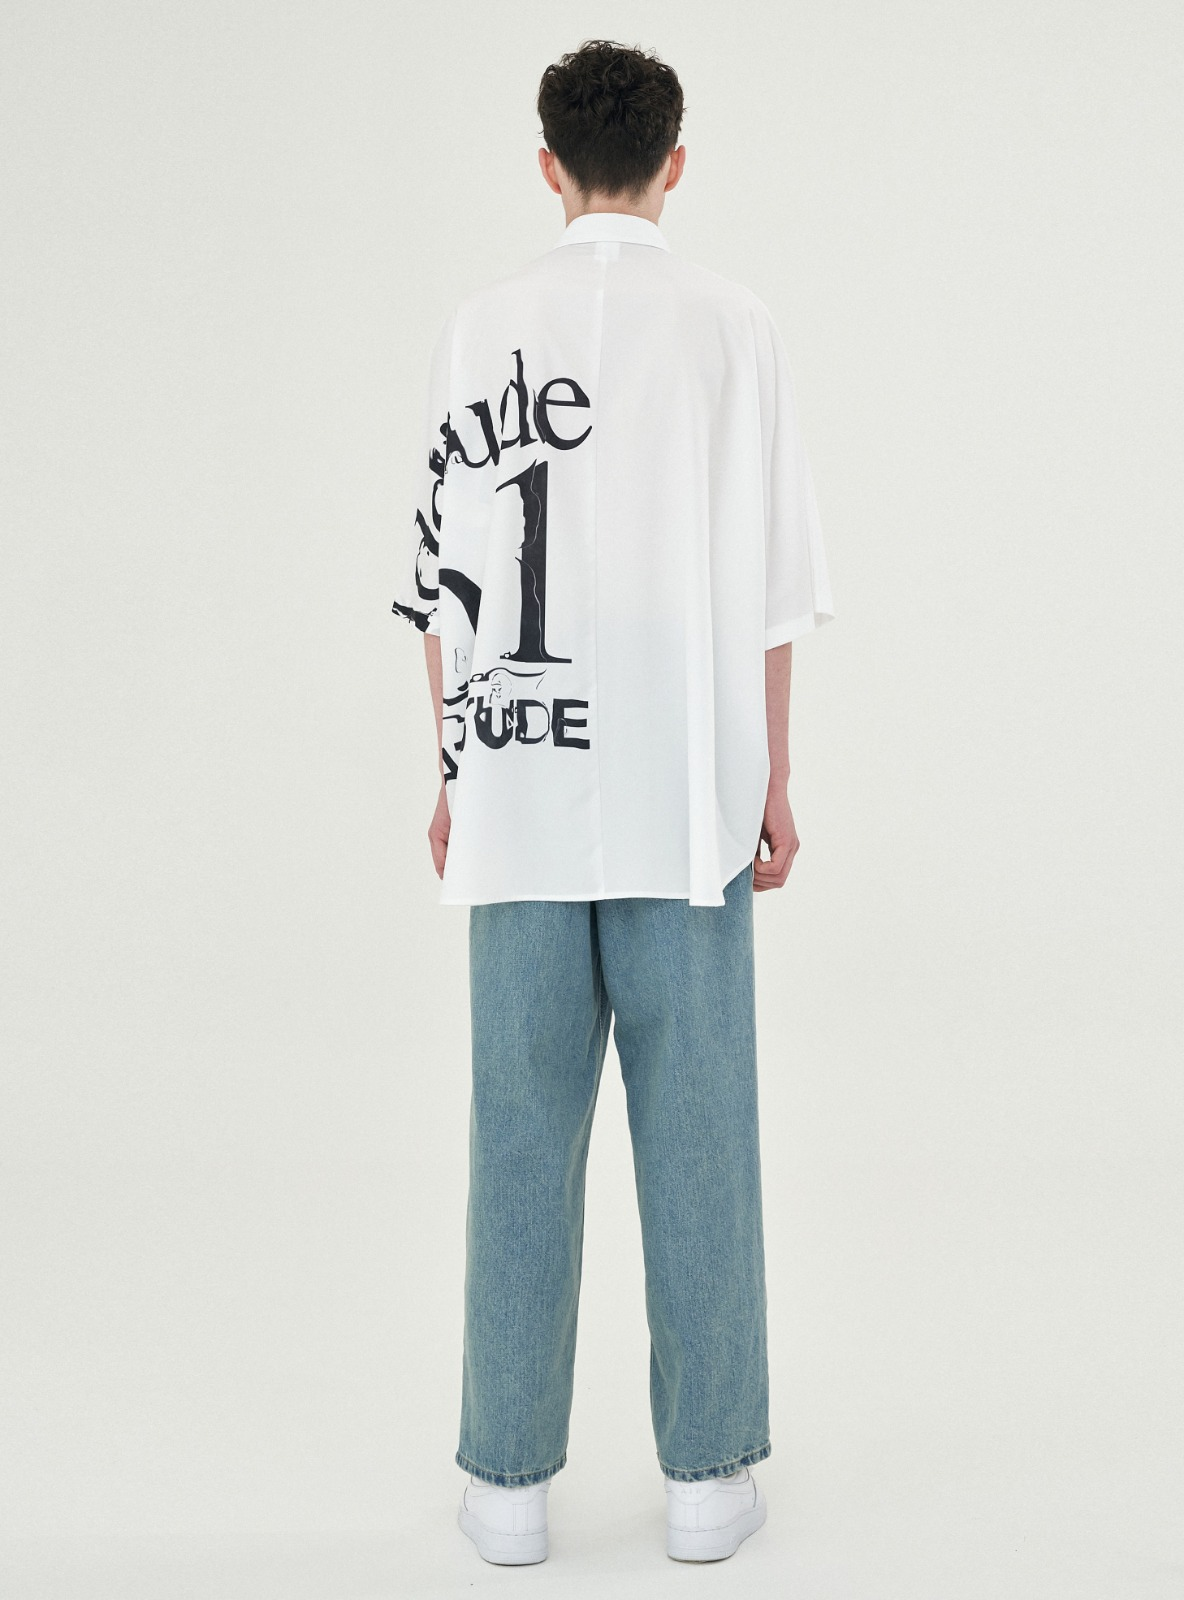 ADDITUDE No.1 AVANTGRADE SHIRT WHITE